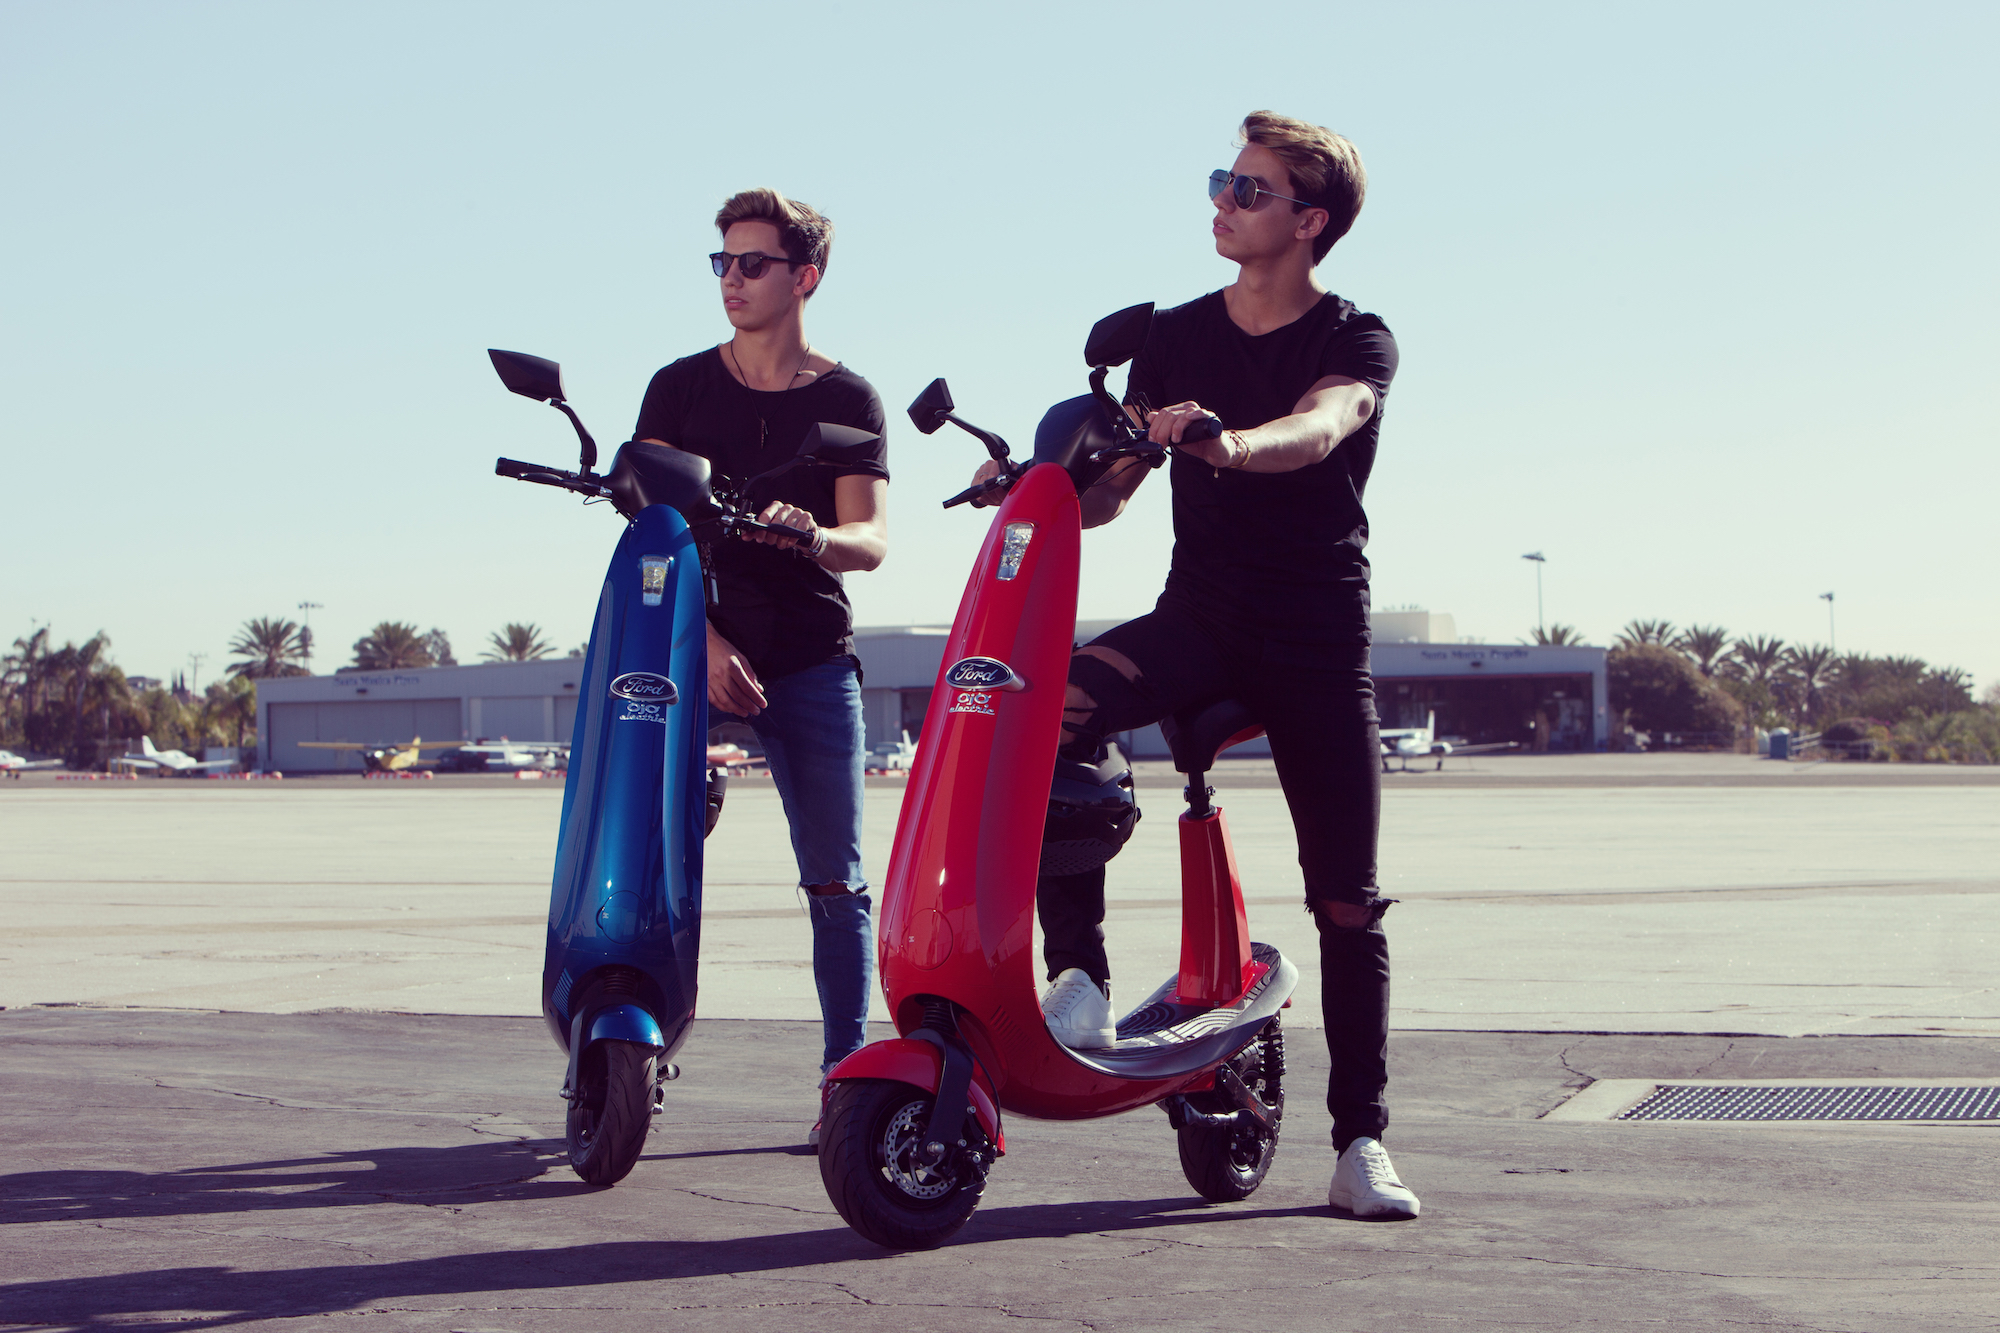 ford lends logo and brand power to local scooter start up santahidden beneath all the hype in santa monica surrounding the dockless scooter app bird, there\u0027s a second electric vehicle company in town still zooming under